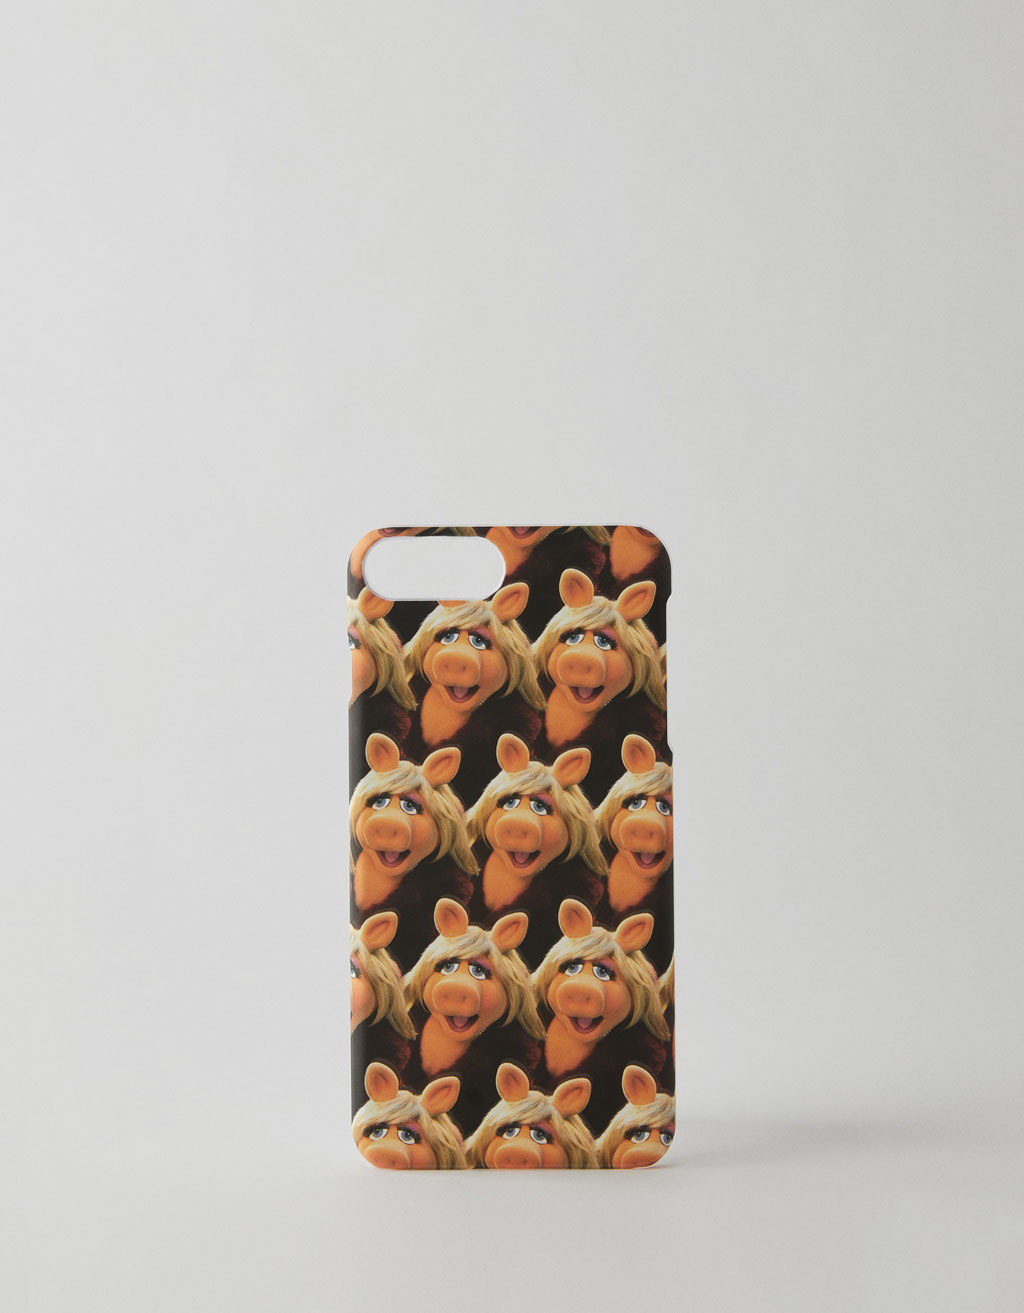 Hoesje Muppets Miss Piggy voor iPhone 6 plus/7 plus/8 plus